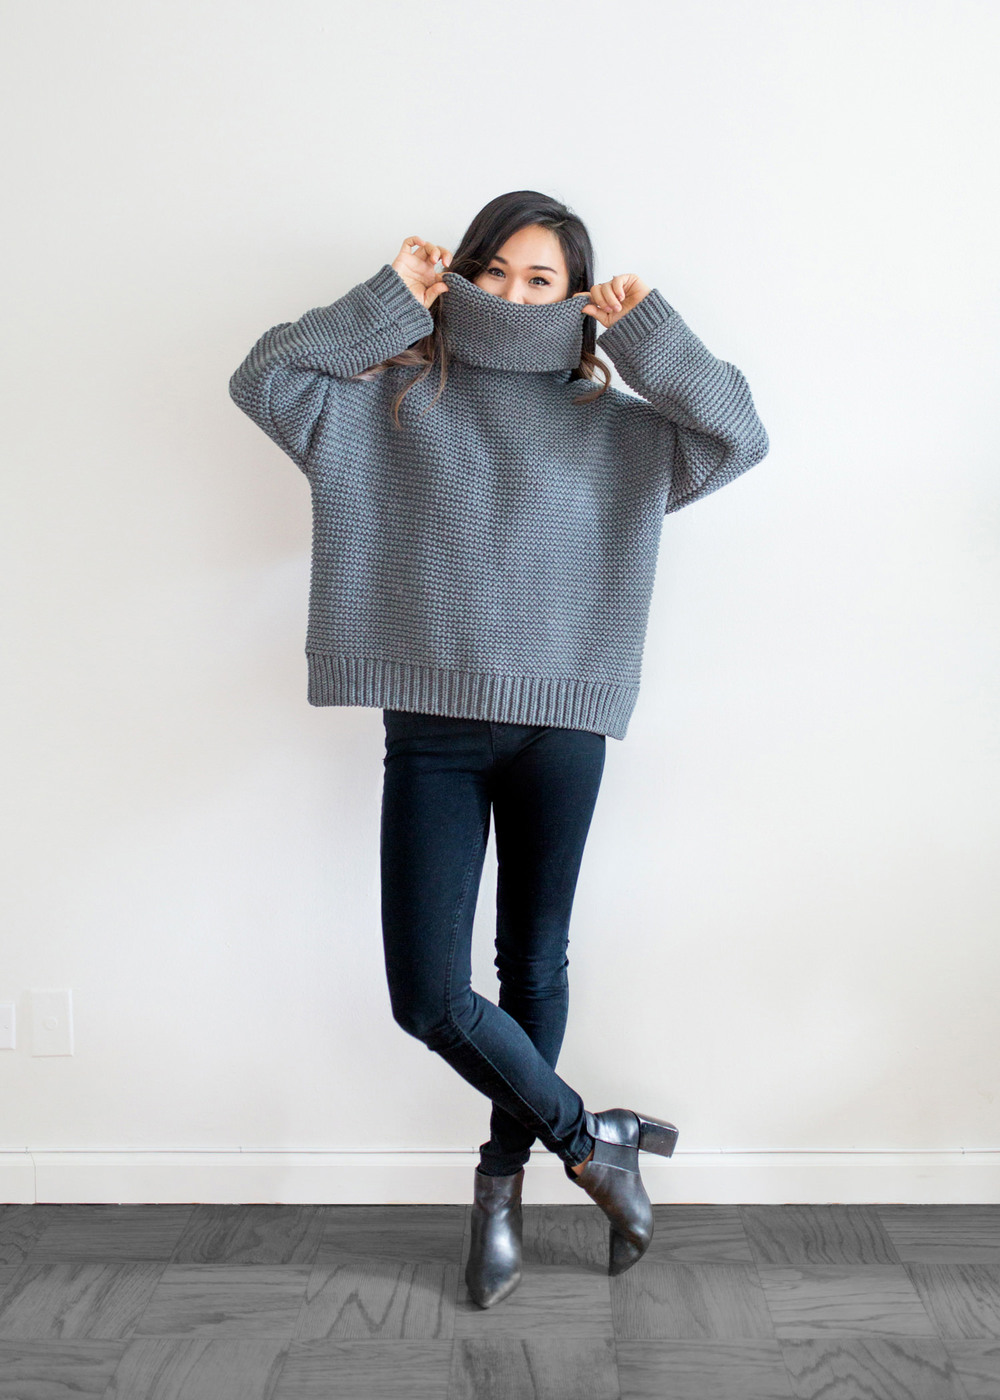 cocotrish_patriciachang_sokophotos_outfit_turtleneck_2